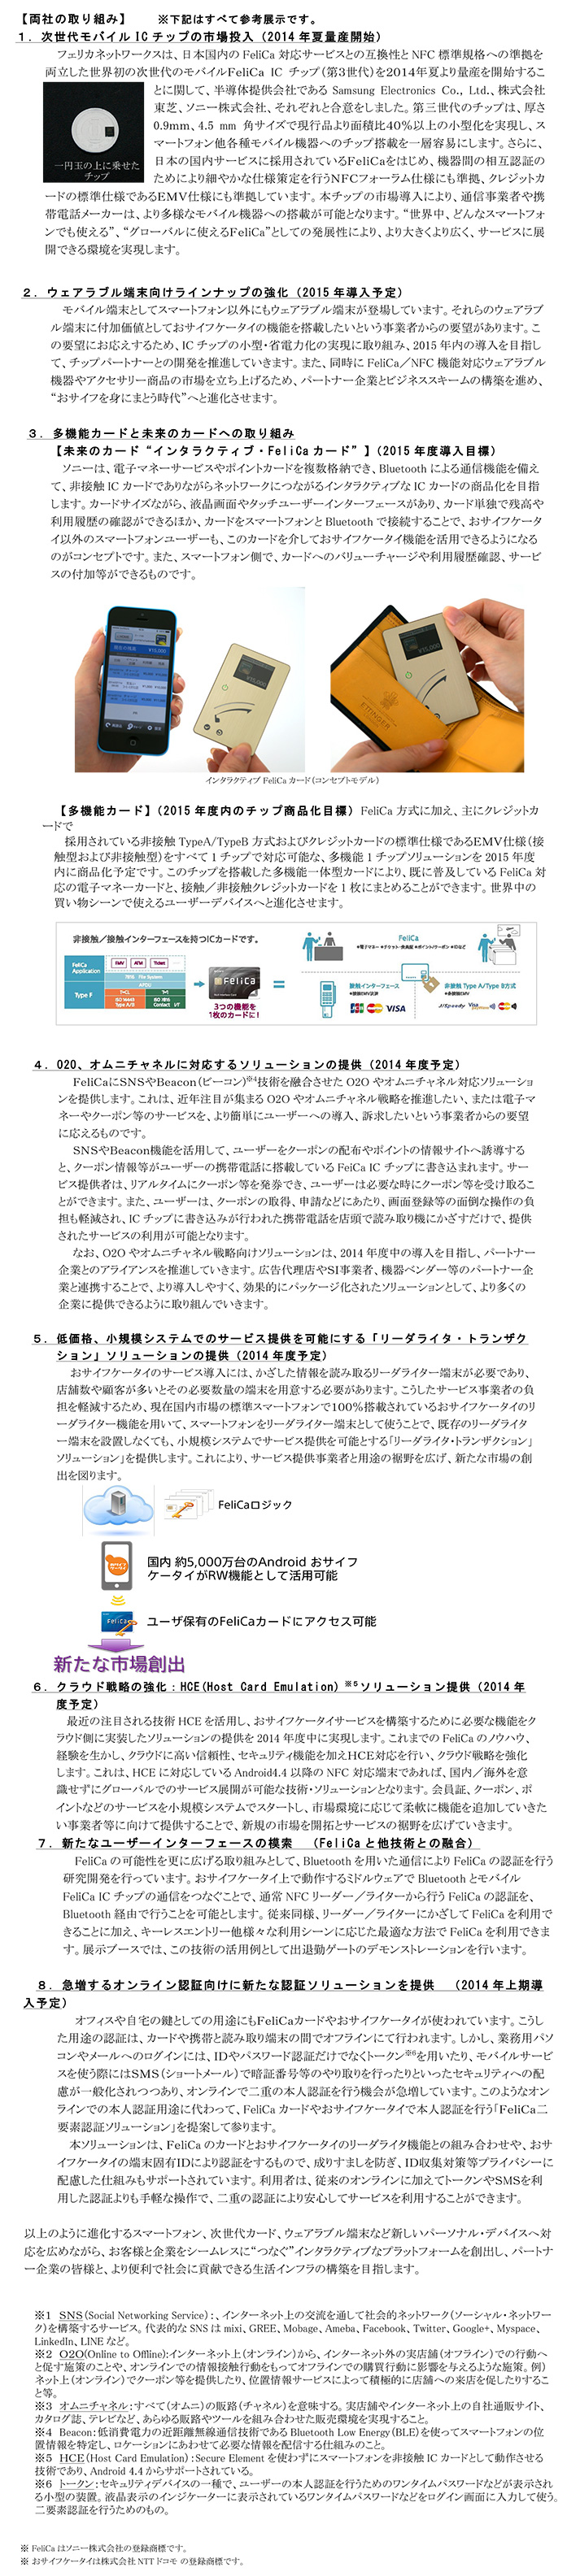 Felica connect取り組み